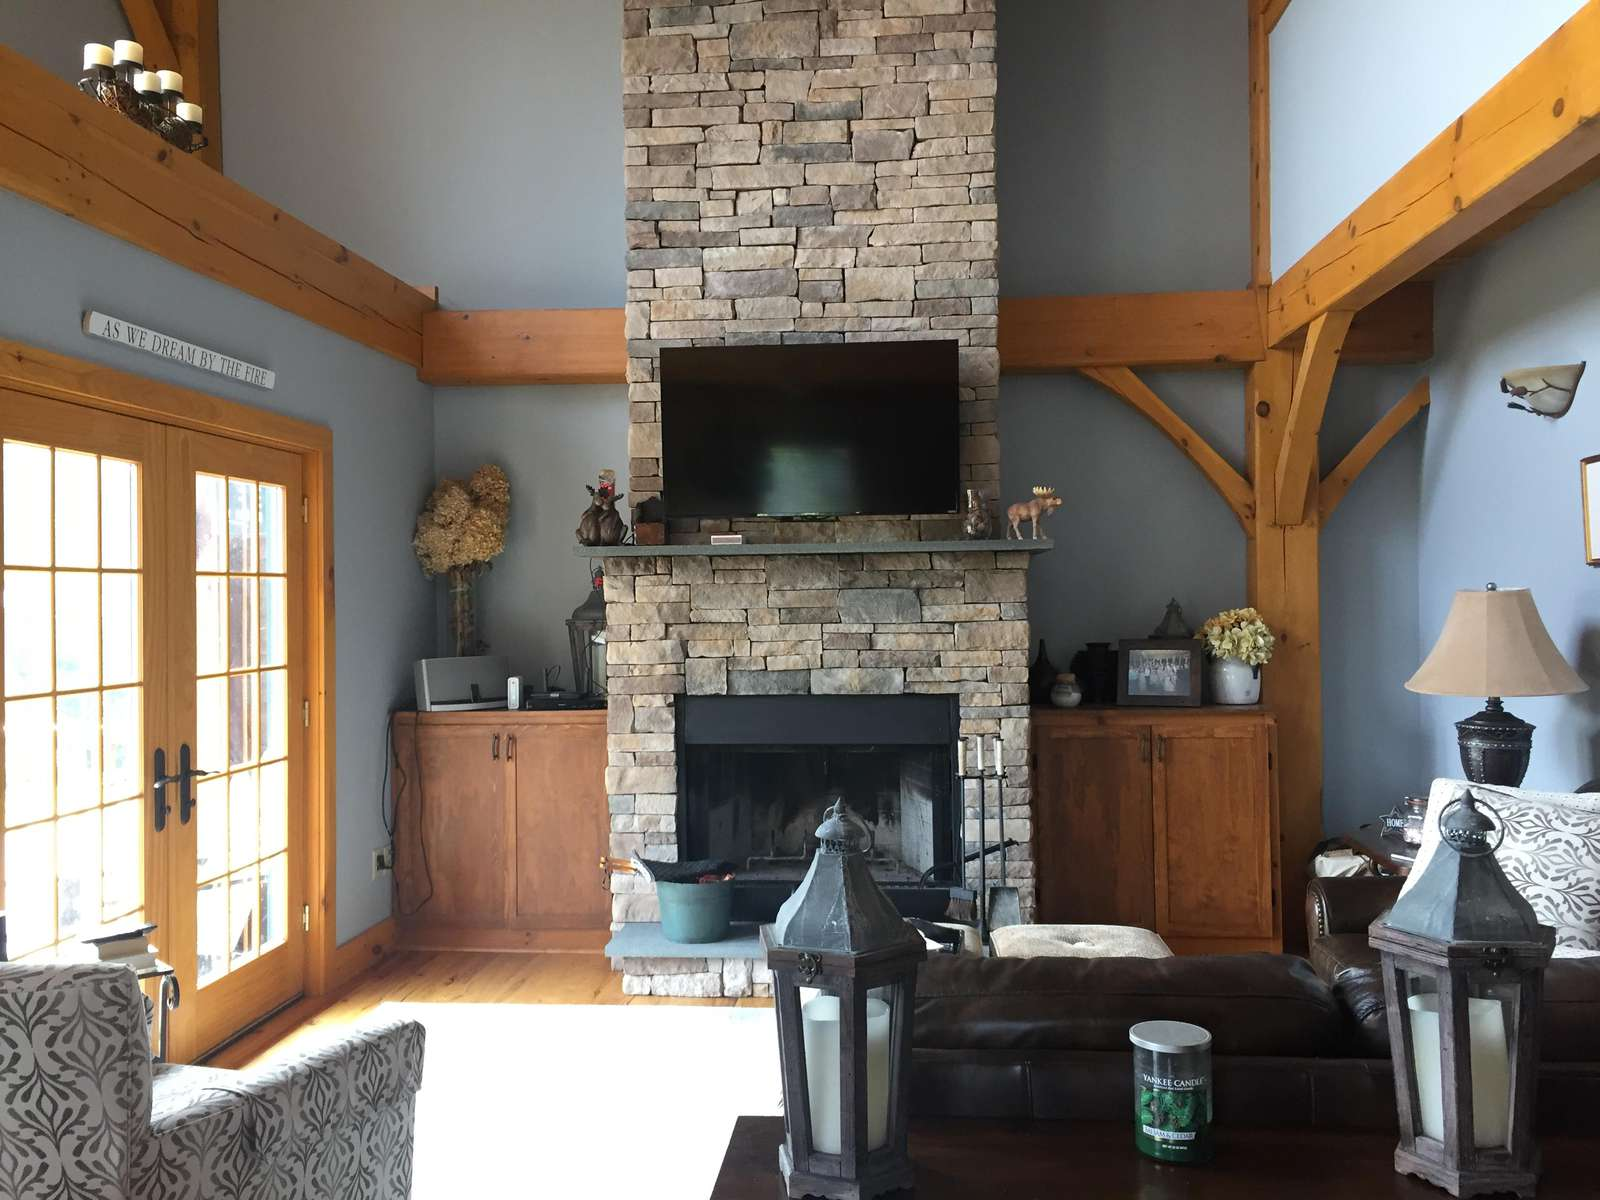 Vaulted ceilings and timber framing - property